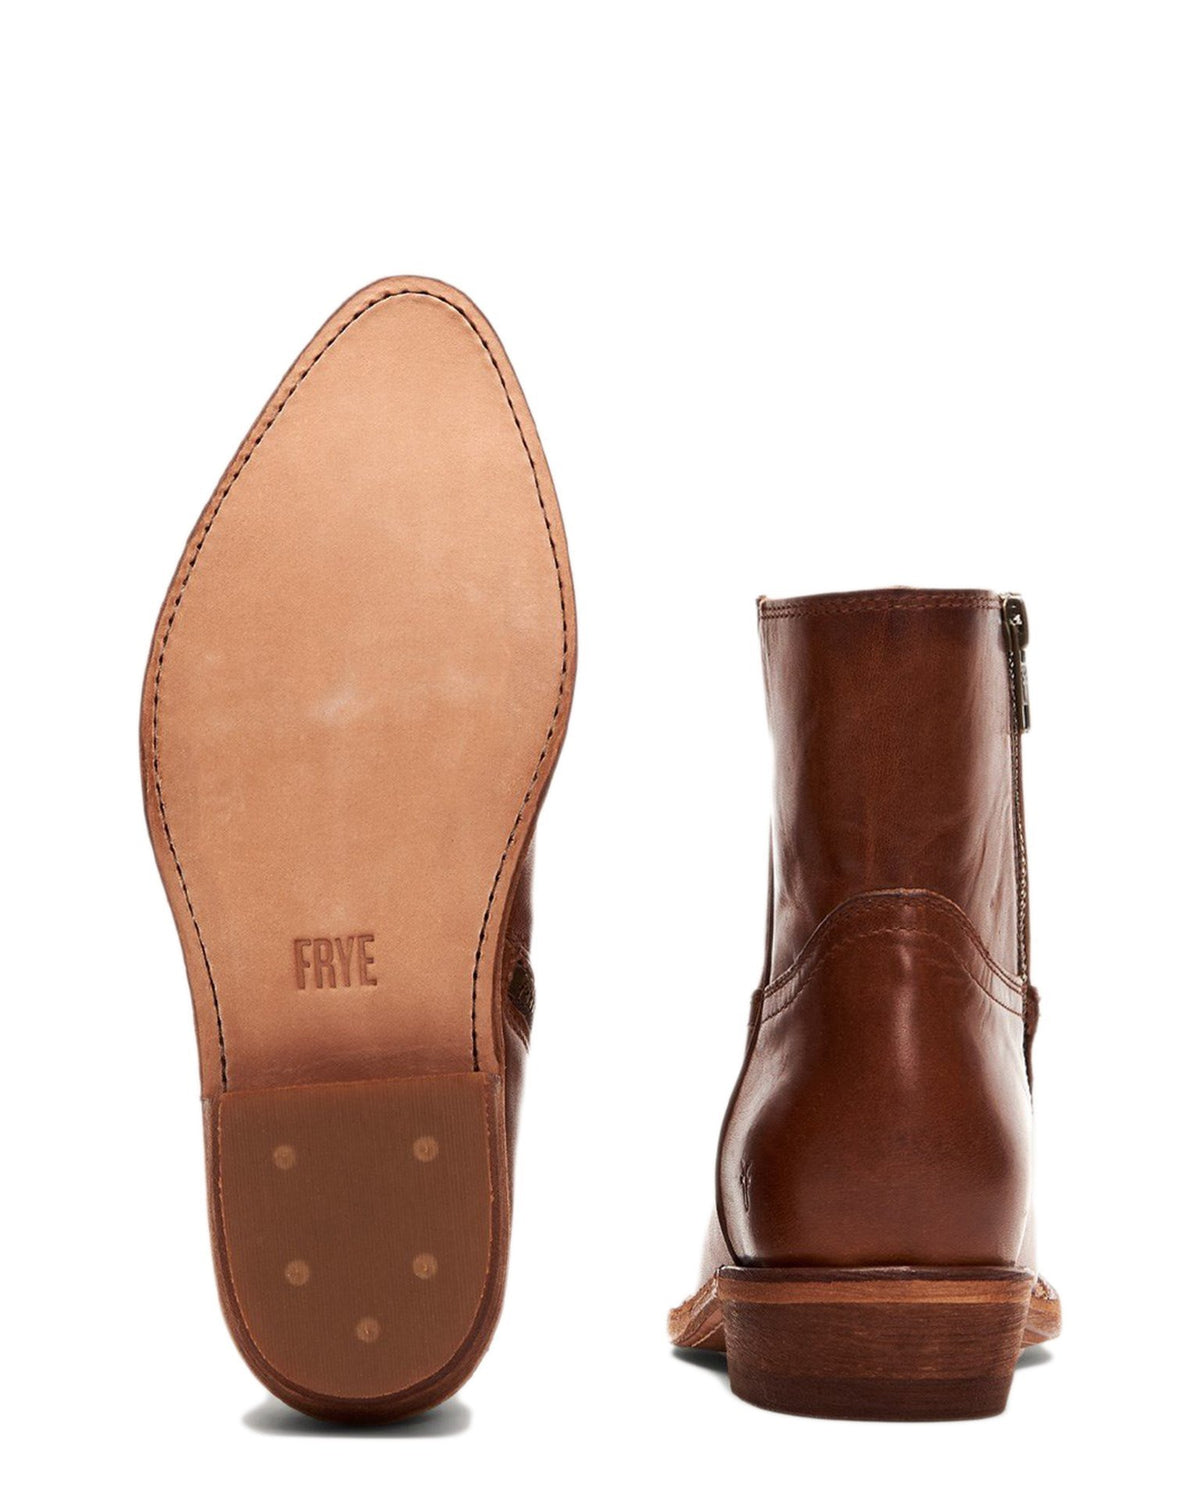 The Frye Company Shoes Billy Inside Zip Bootie